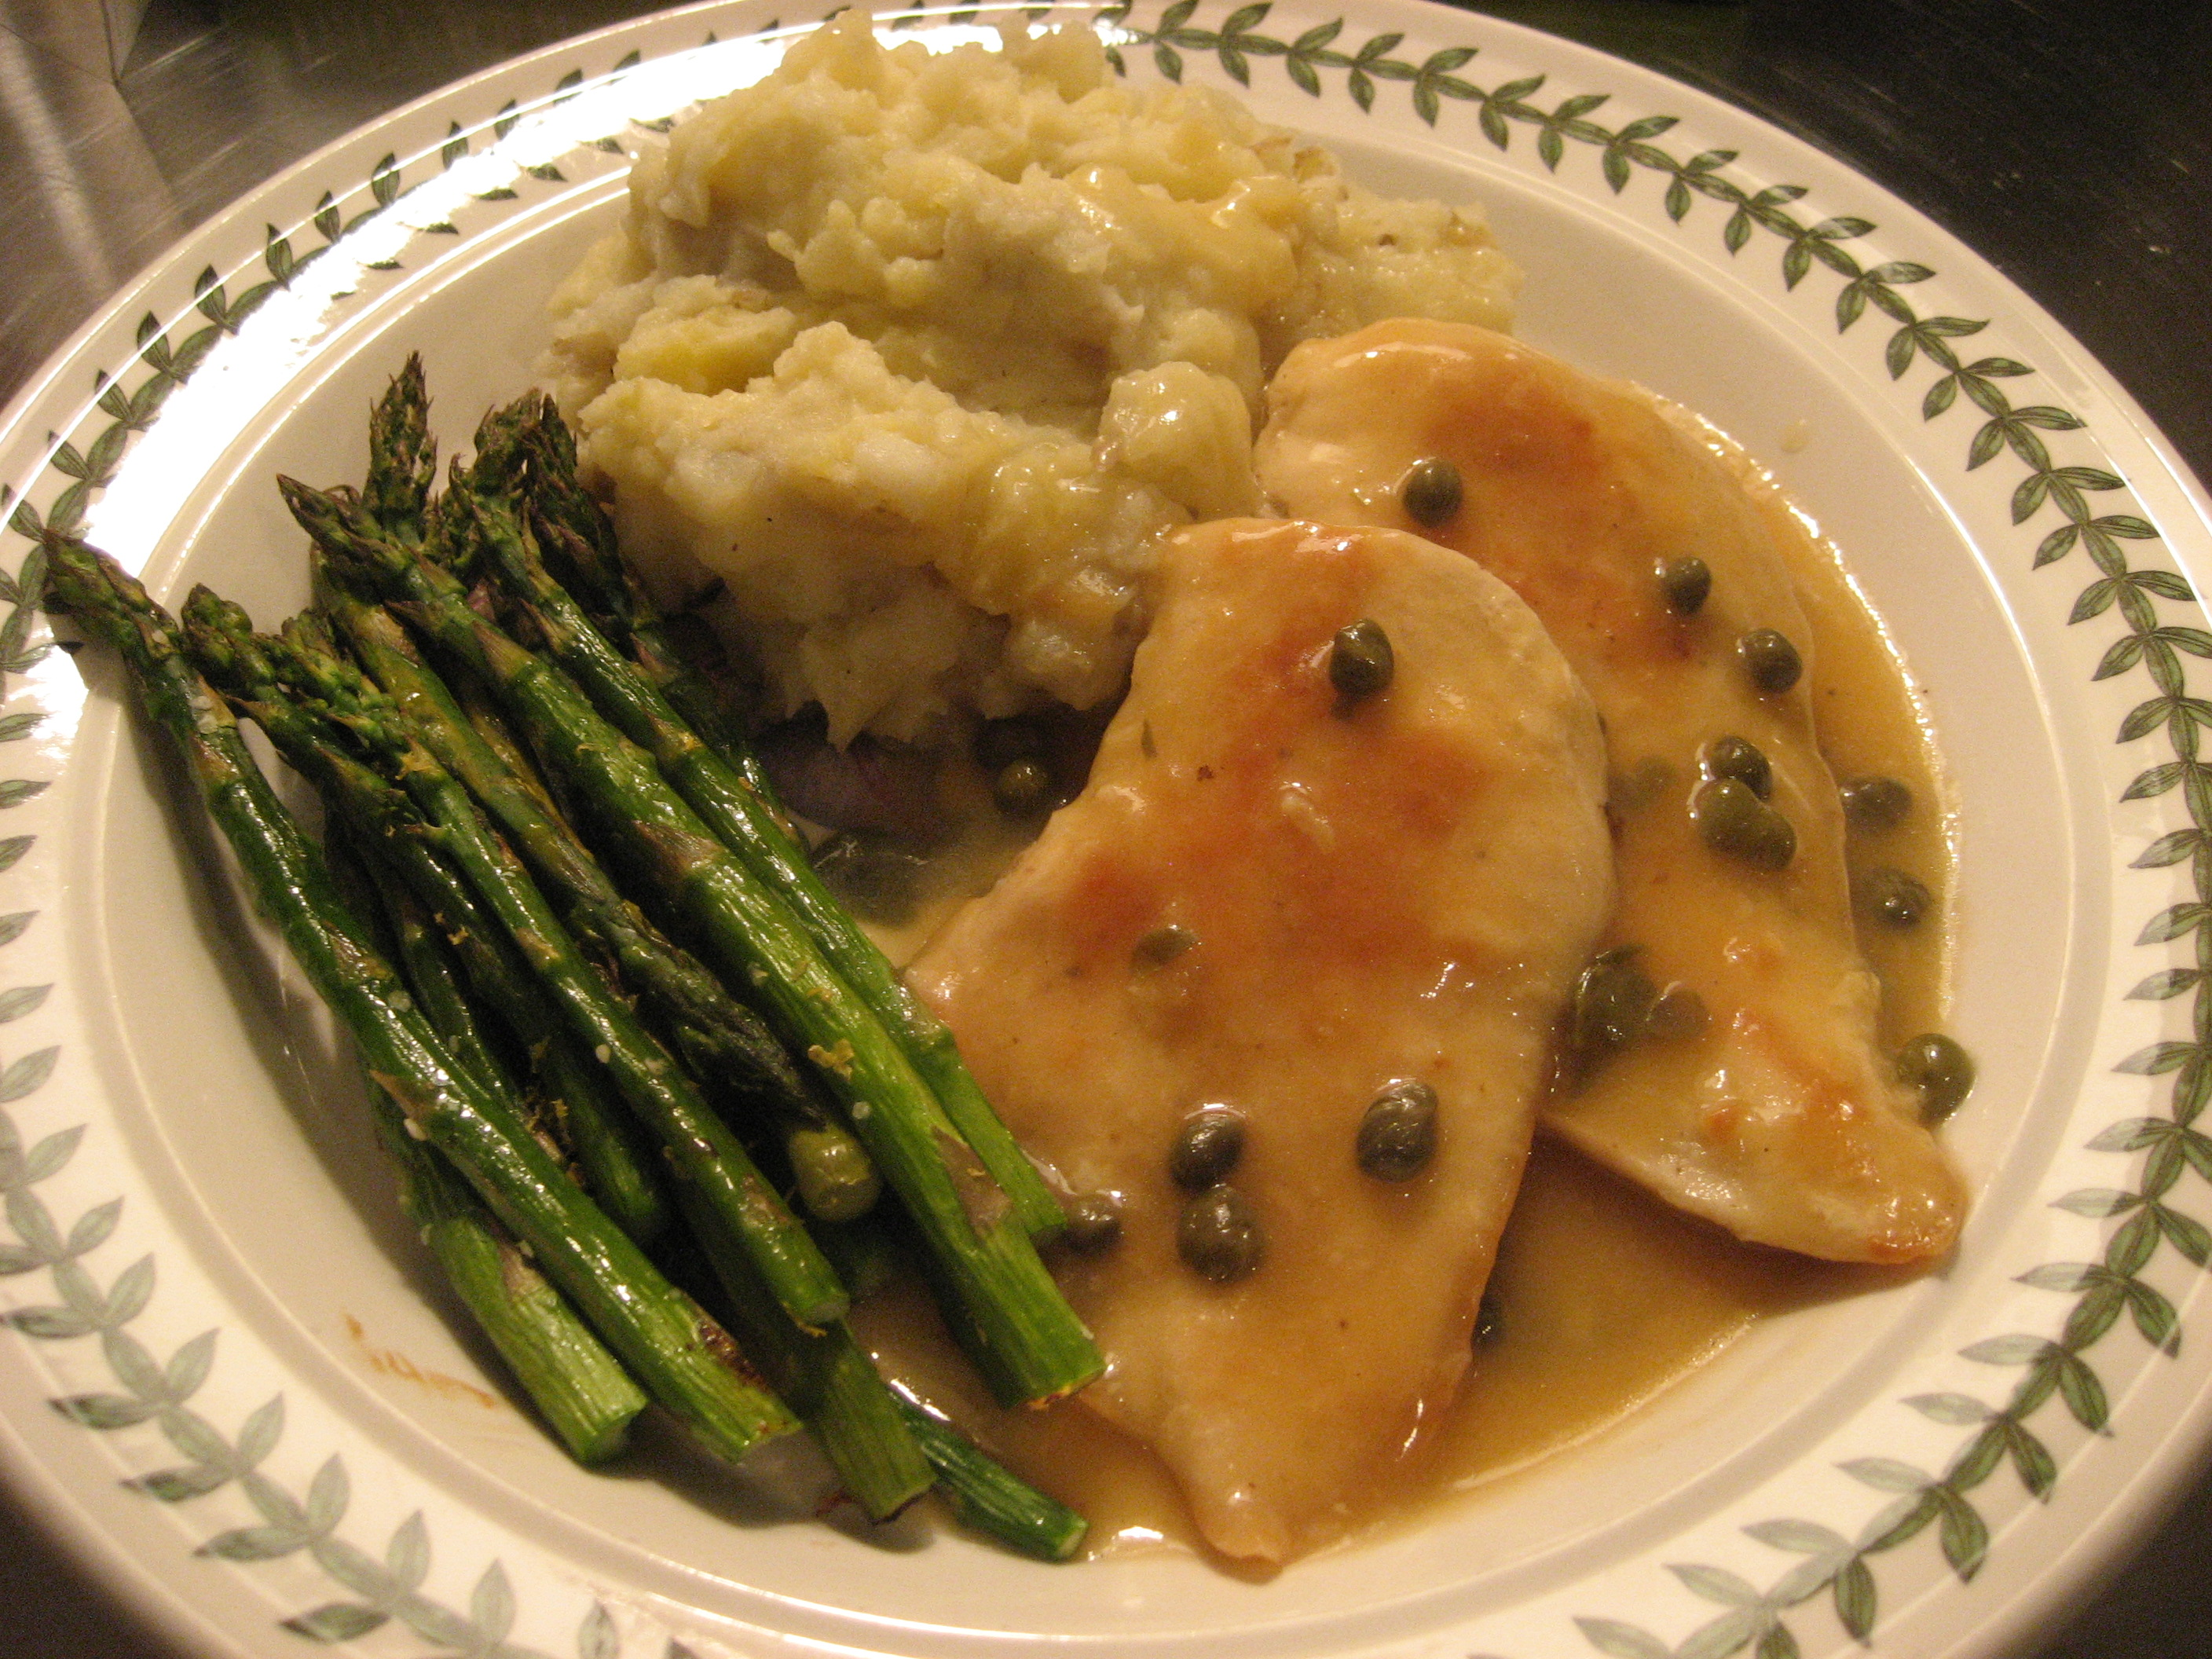 lemon-caper chicken, roasted garlic mashed potatoes and asparagus